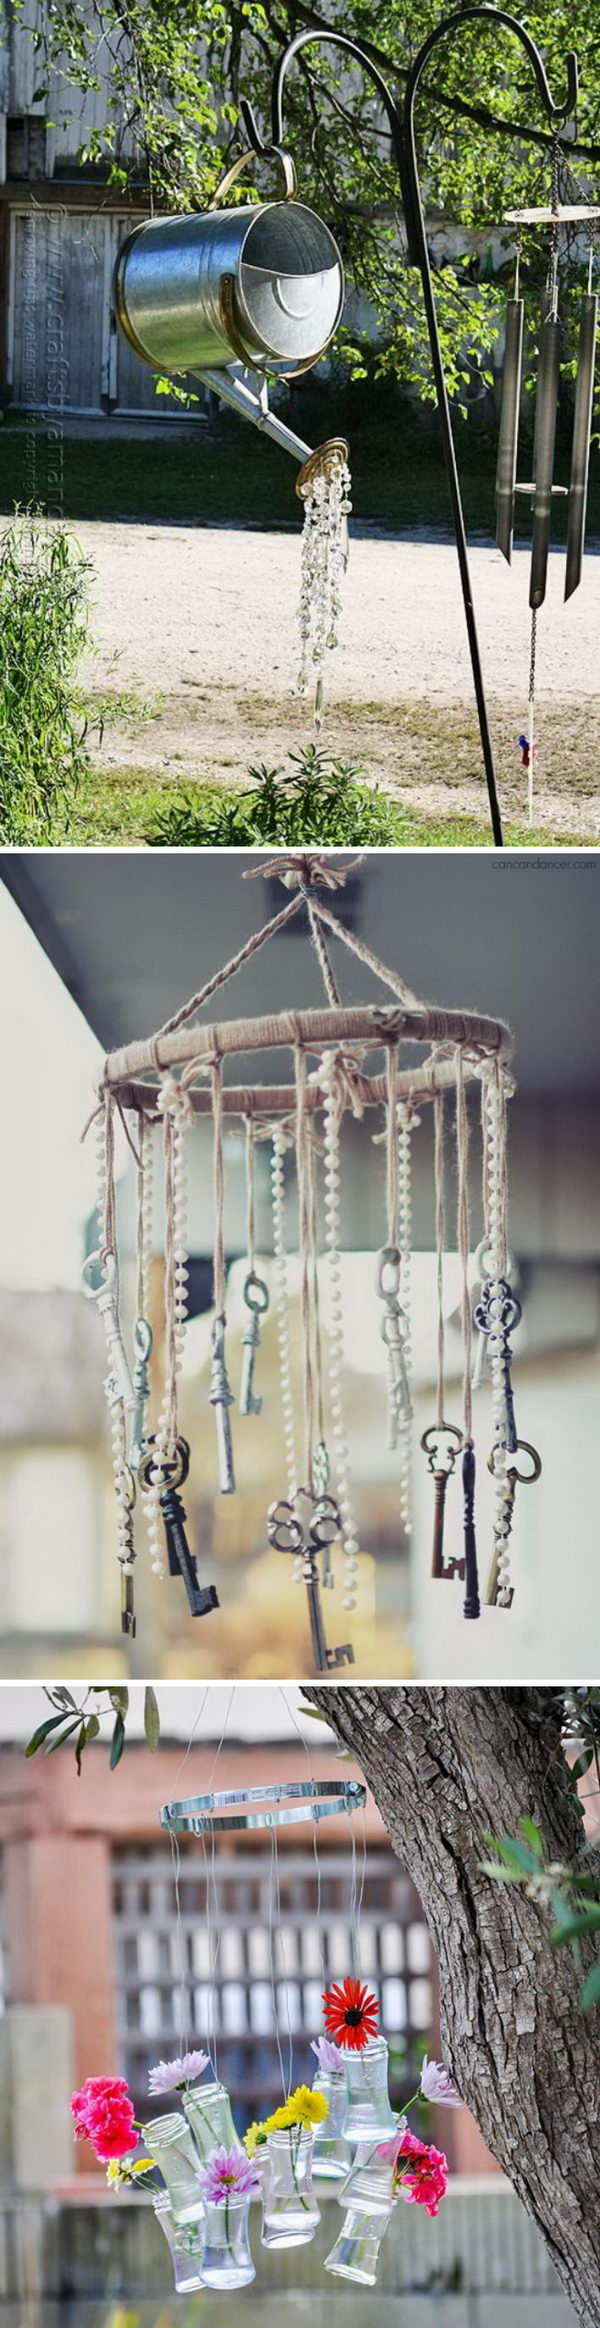 Wind Chime DIY Ideas & Tutorials.